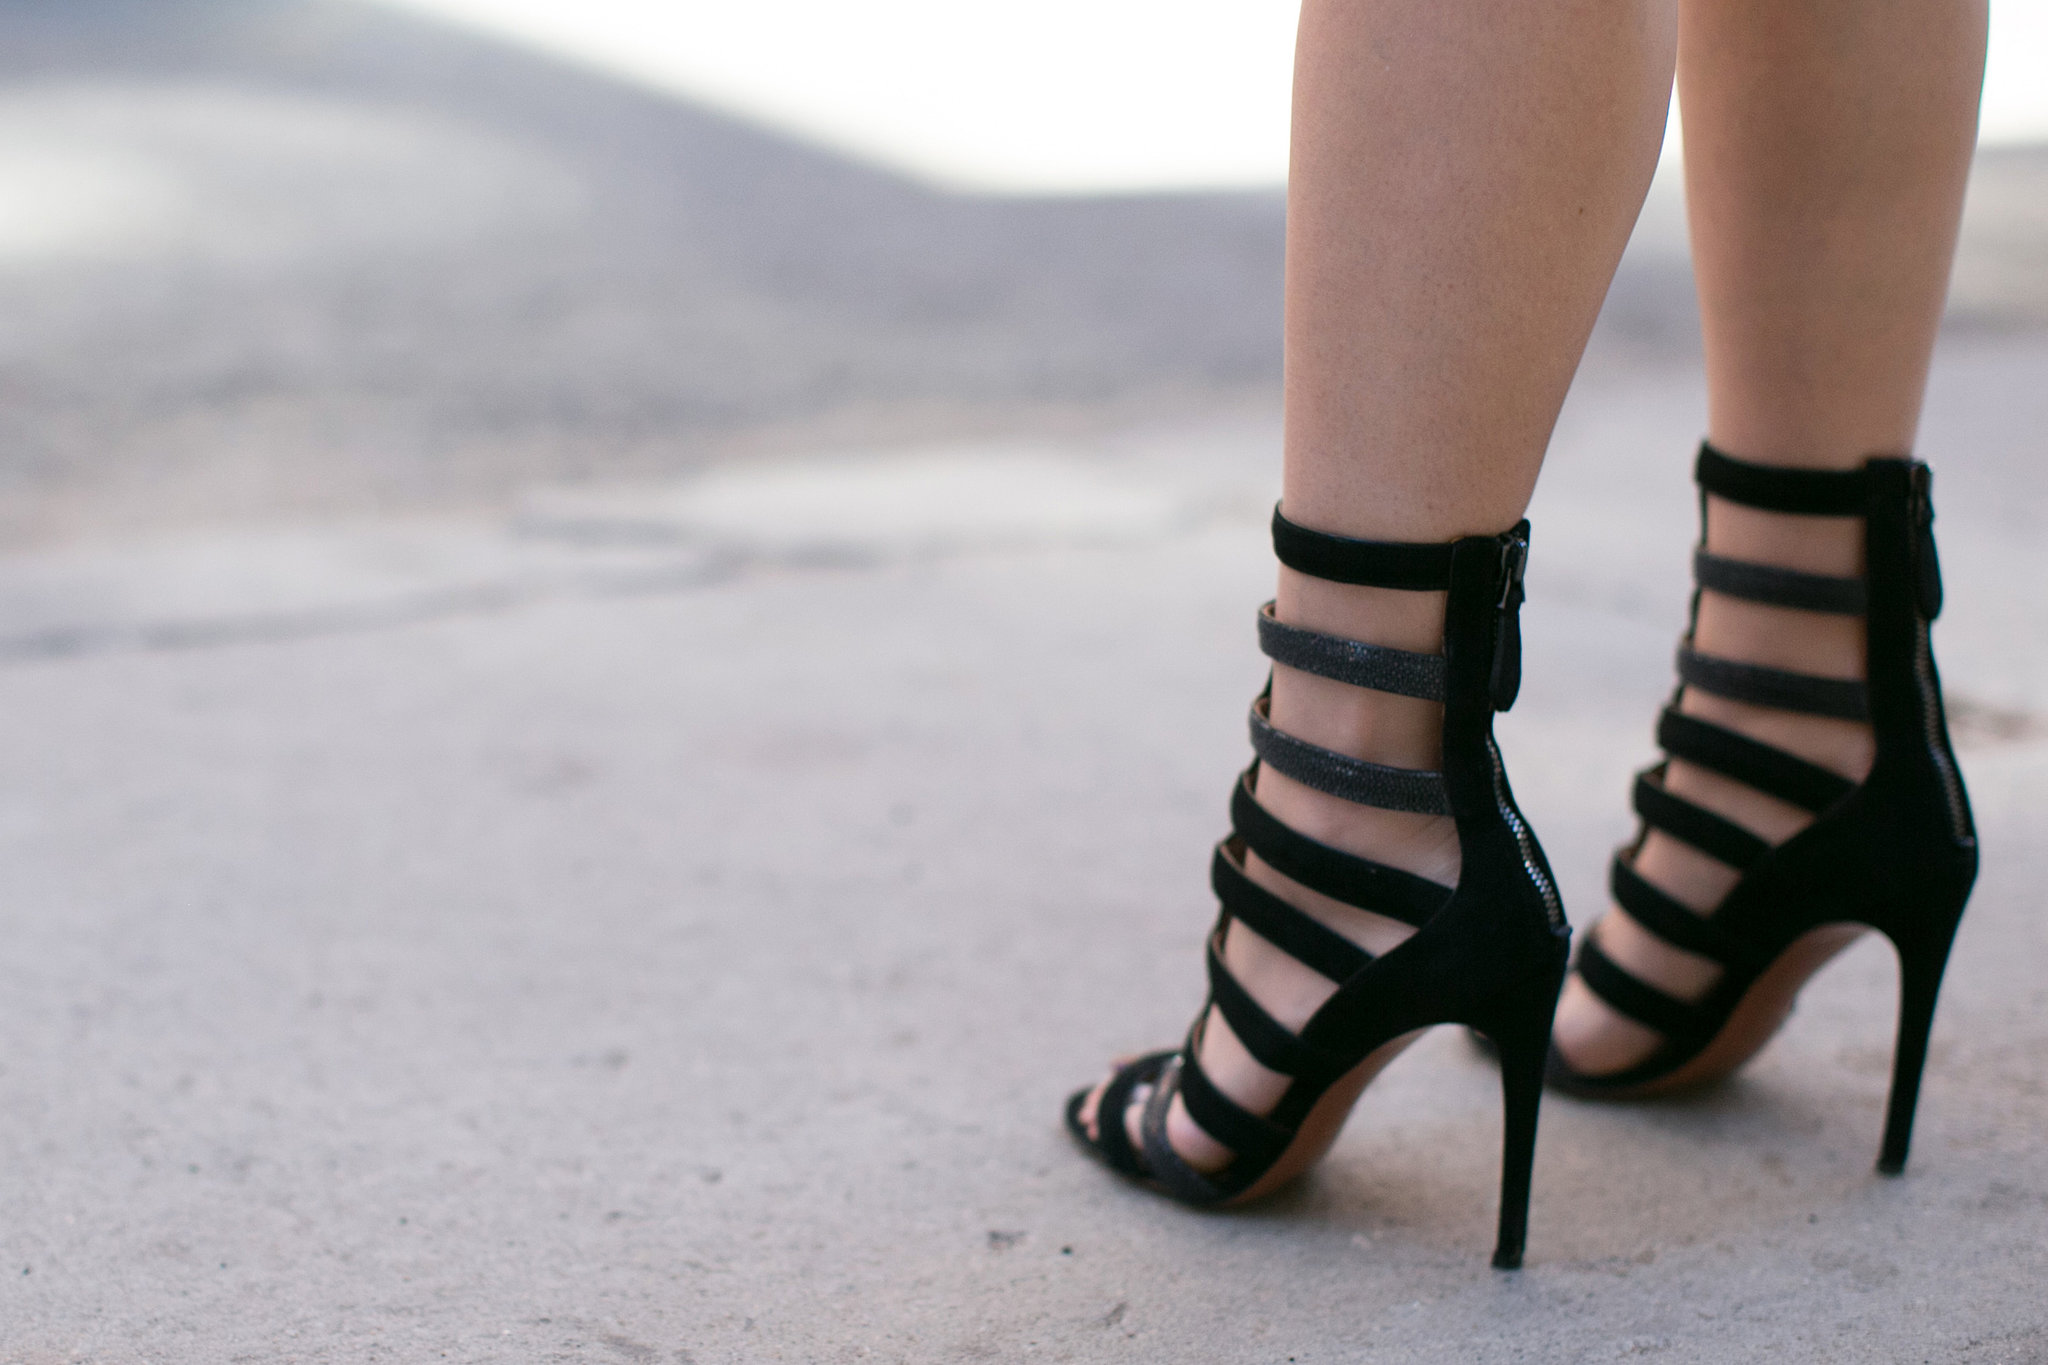 Now, that's some fierce footwear.